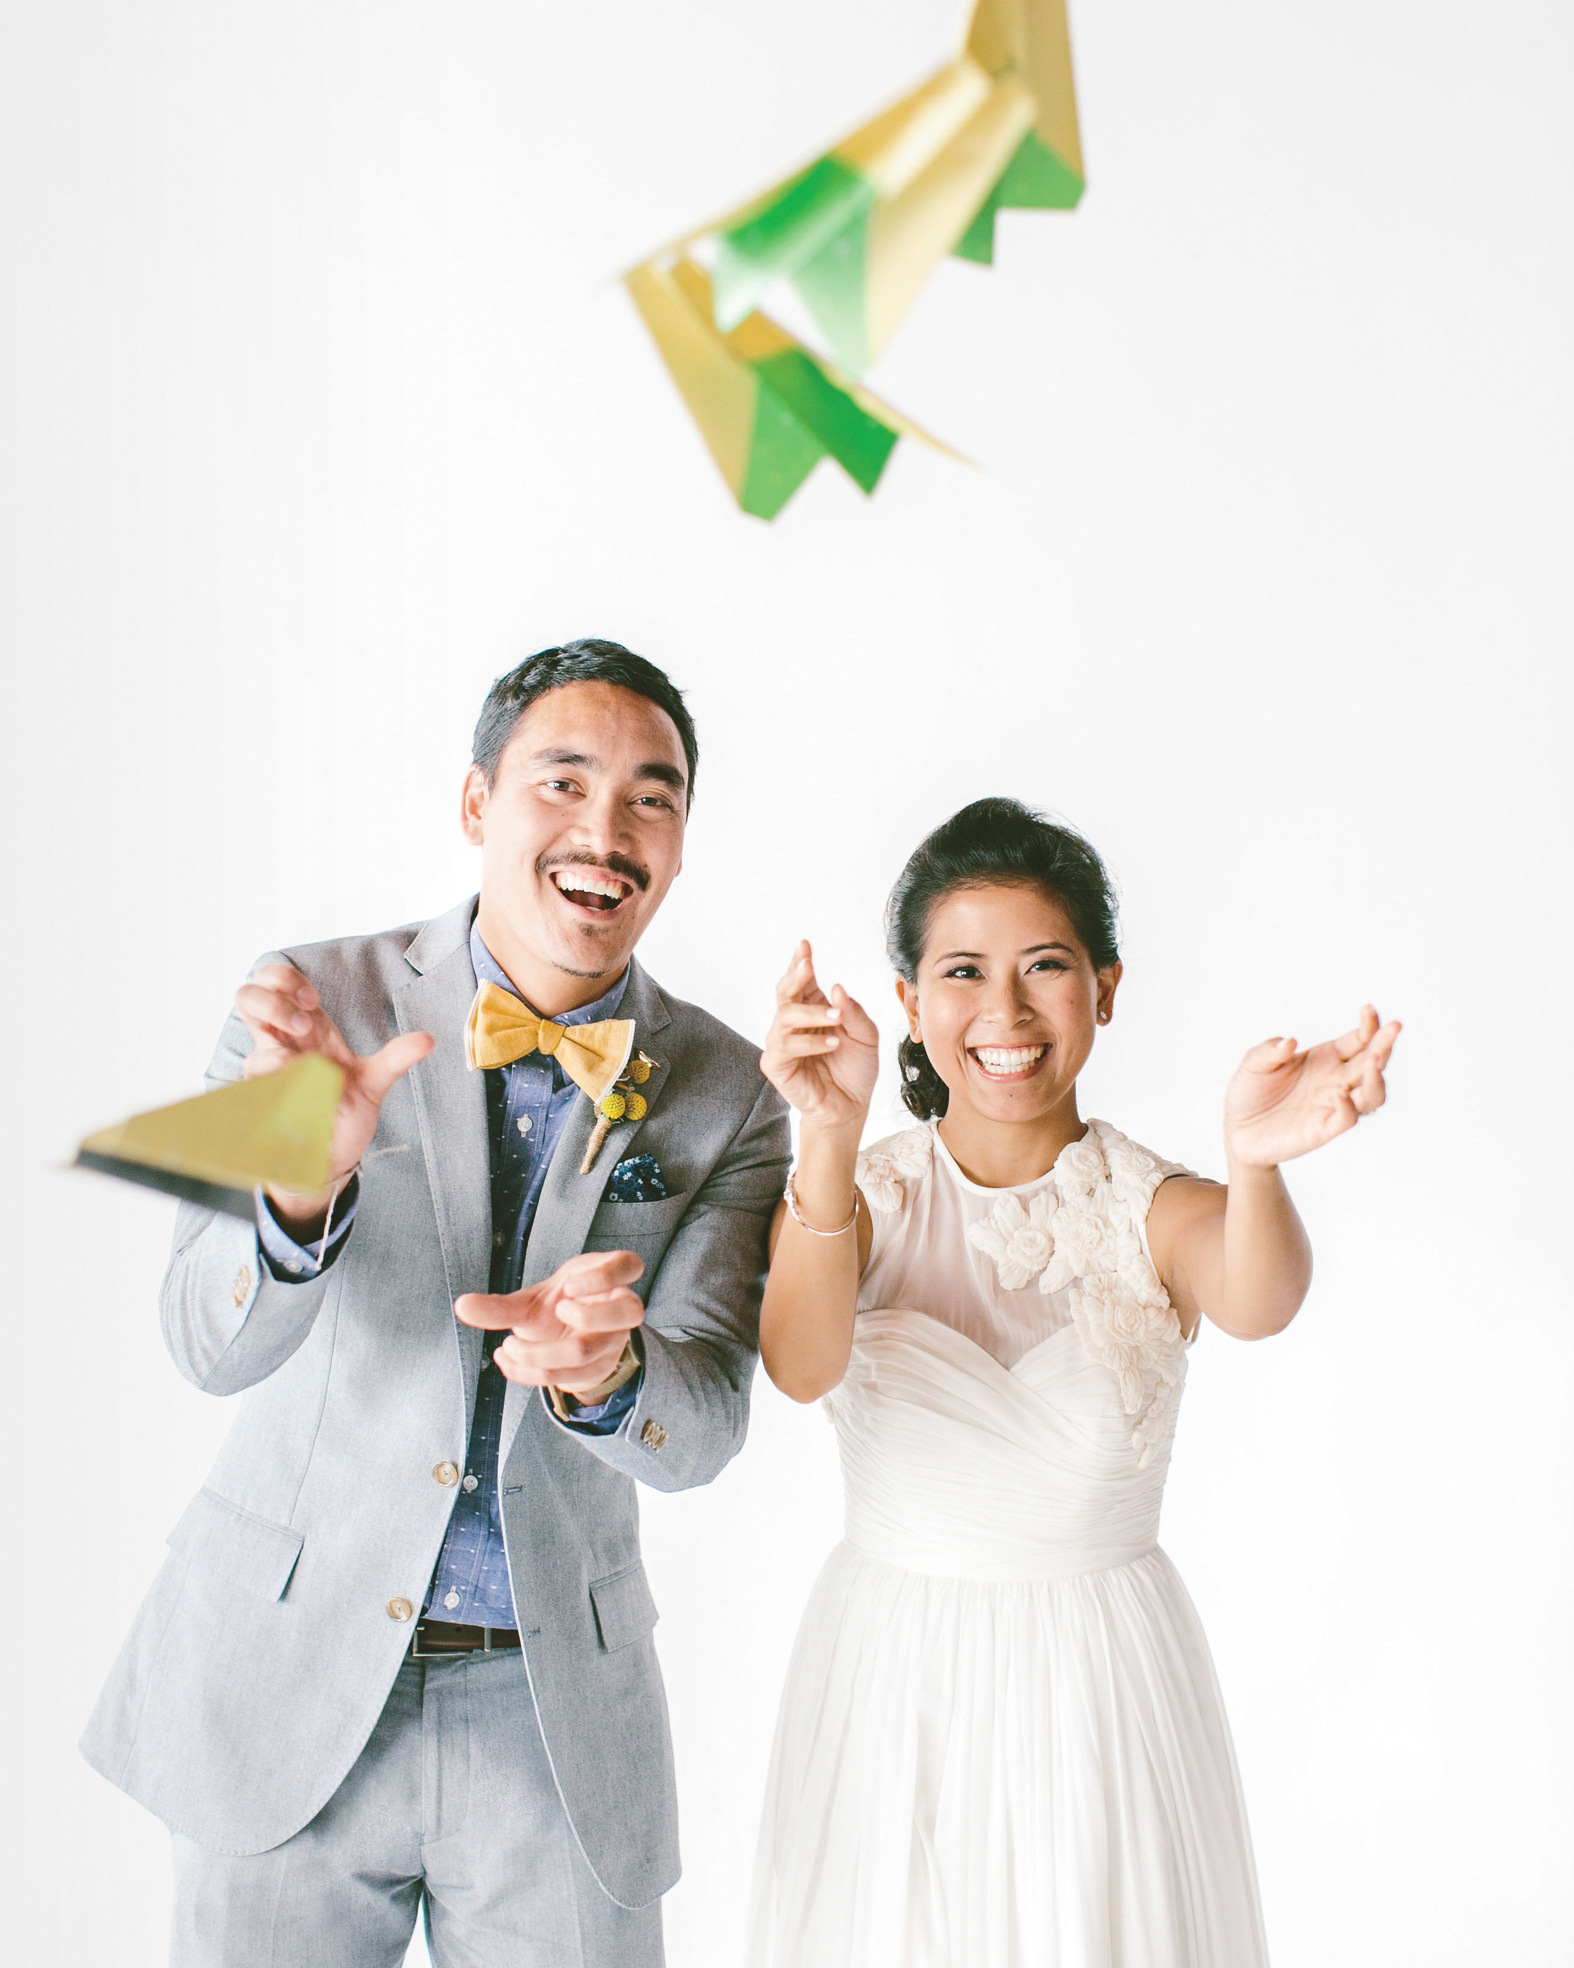 bride-groom-paper-airplanes-matt-melissa-top-selects42-mwds111011.jpg